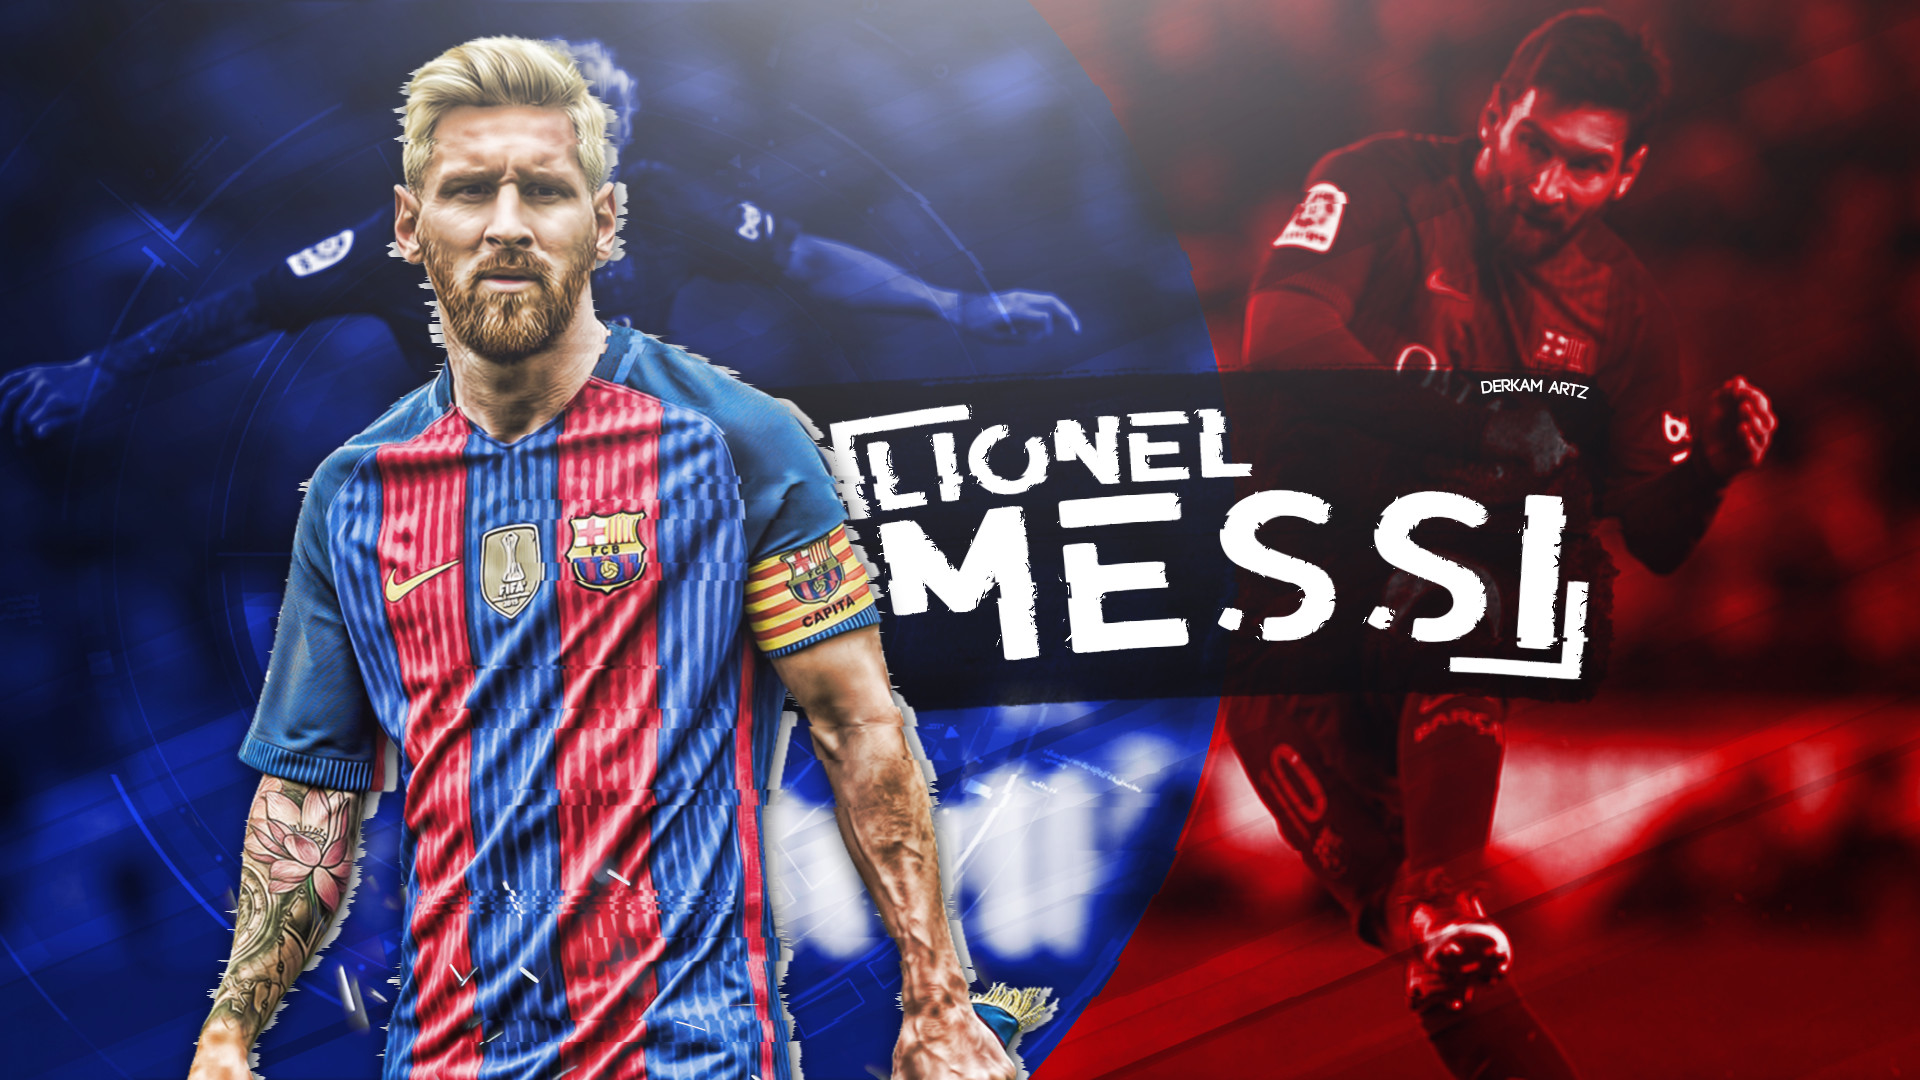 Lionel Messi 2018 Wallpapers Hd 1080p 75 Background Pictures